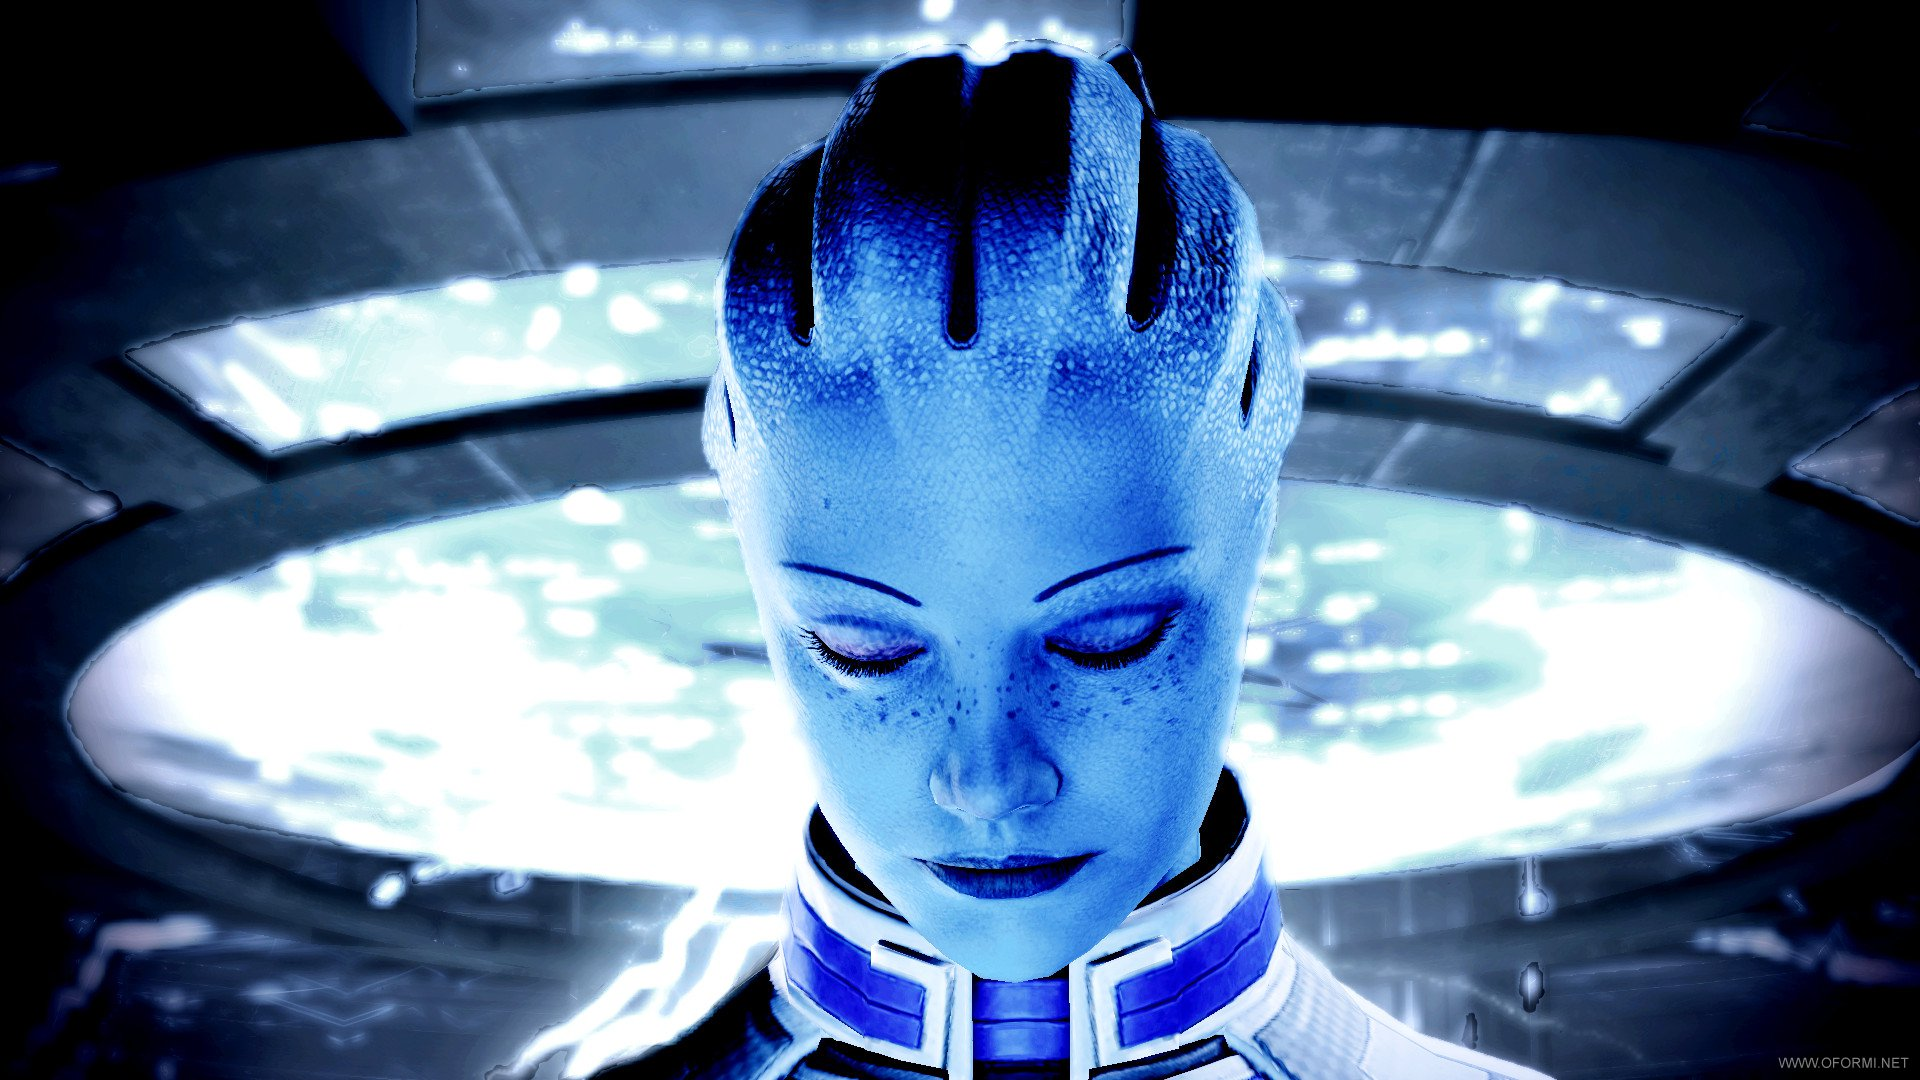 Andromeda Galaxy Wallpaper Iphone Mass Effect Full Hd Wallpaper And Background Image